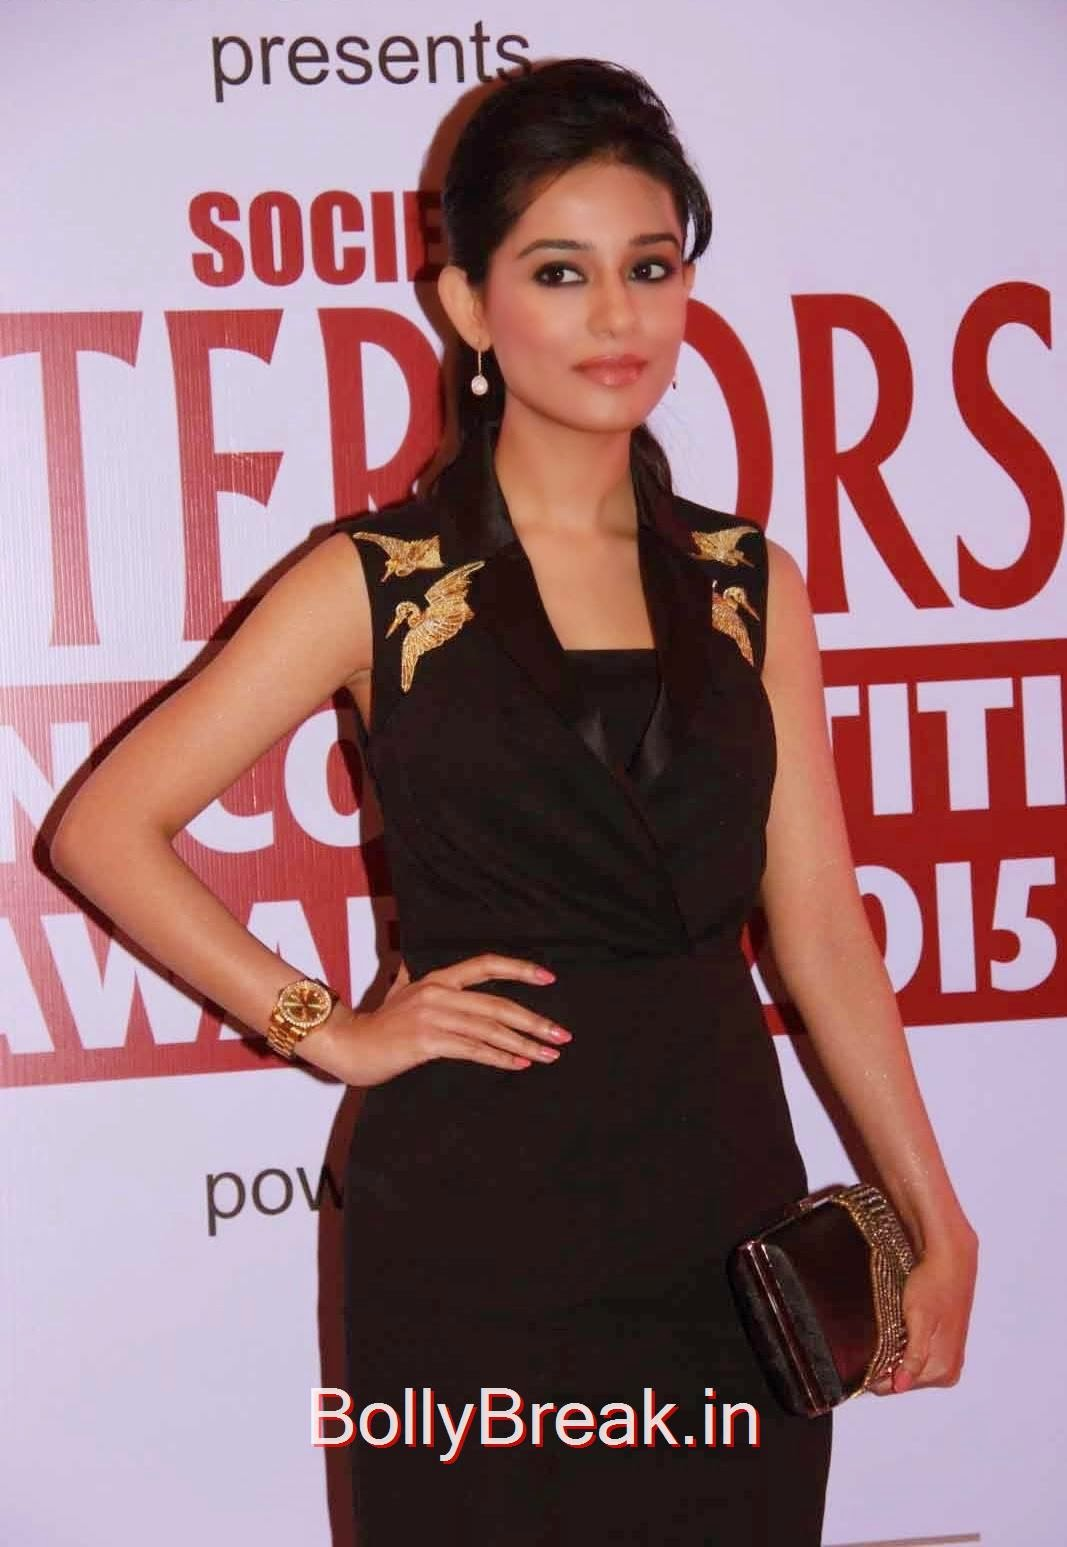 Amrita Rao Stills, Amrita Rao Hot Images from Society Interior Awards